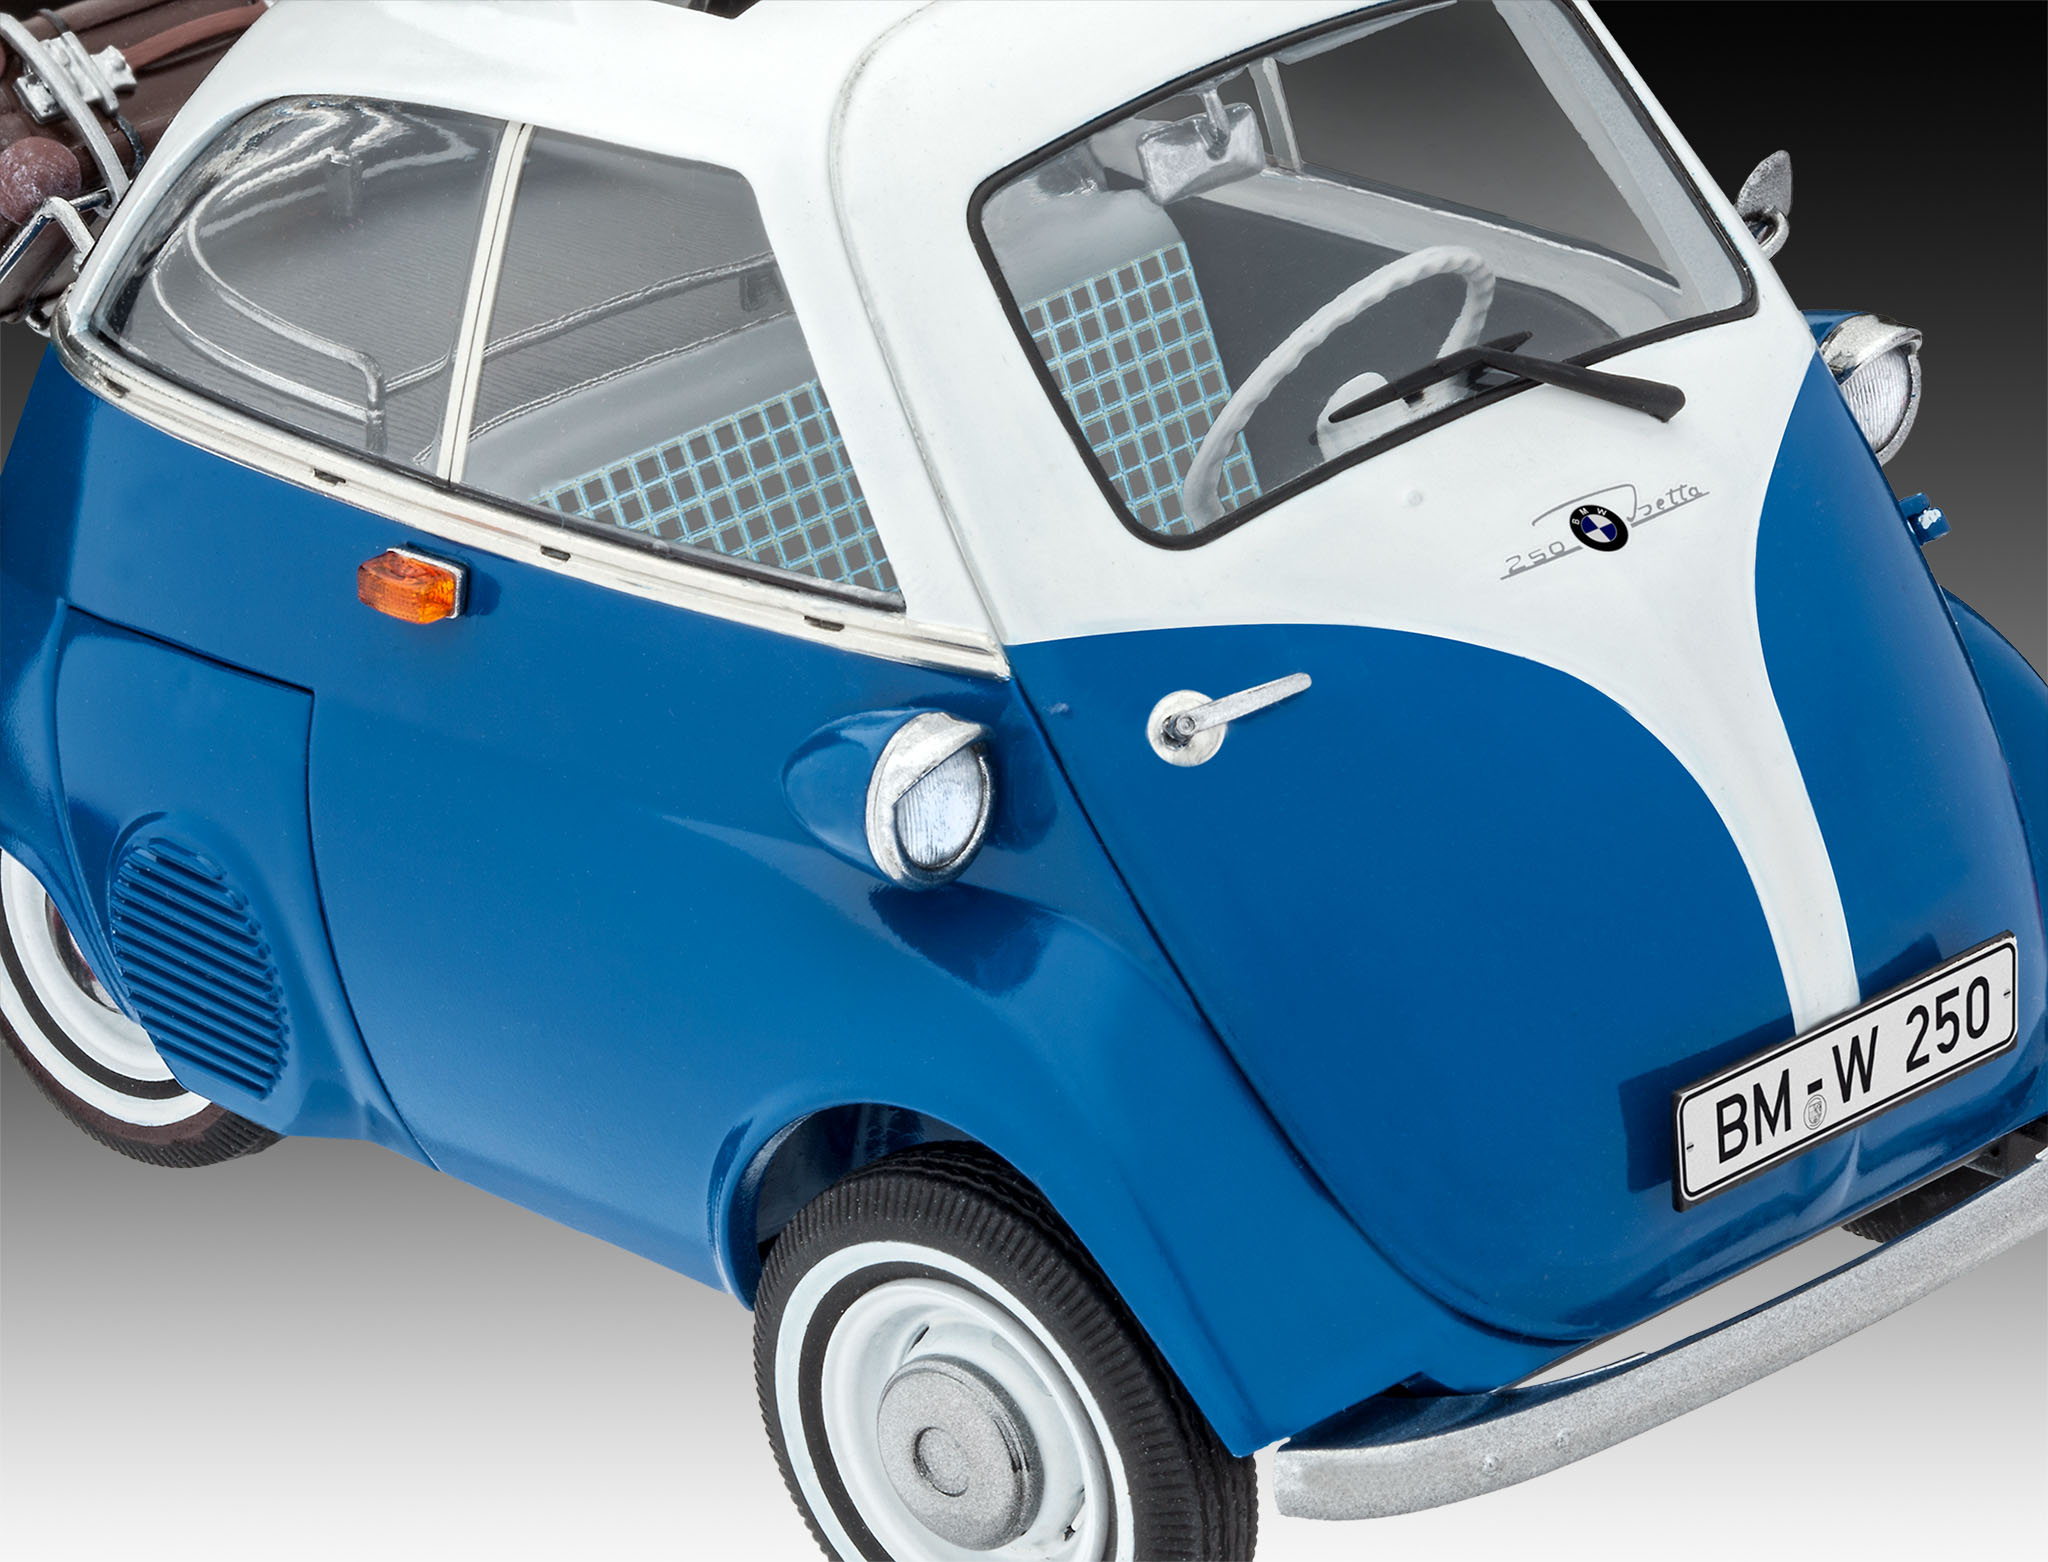 build rc helicopter parts old with Bmw Isetta 250 on P468860 further 9288 Girls Fishing In Bikinis 39 Pics besides T677703p76 additionally 16747829840306684 likewise Police Cars One Century Of Chasing Crime 12273.